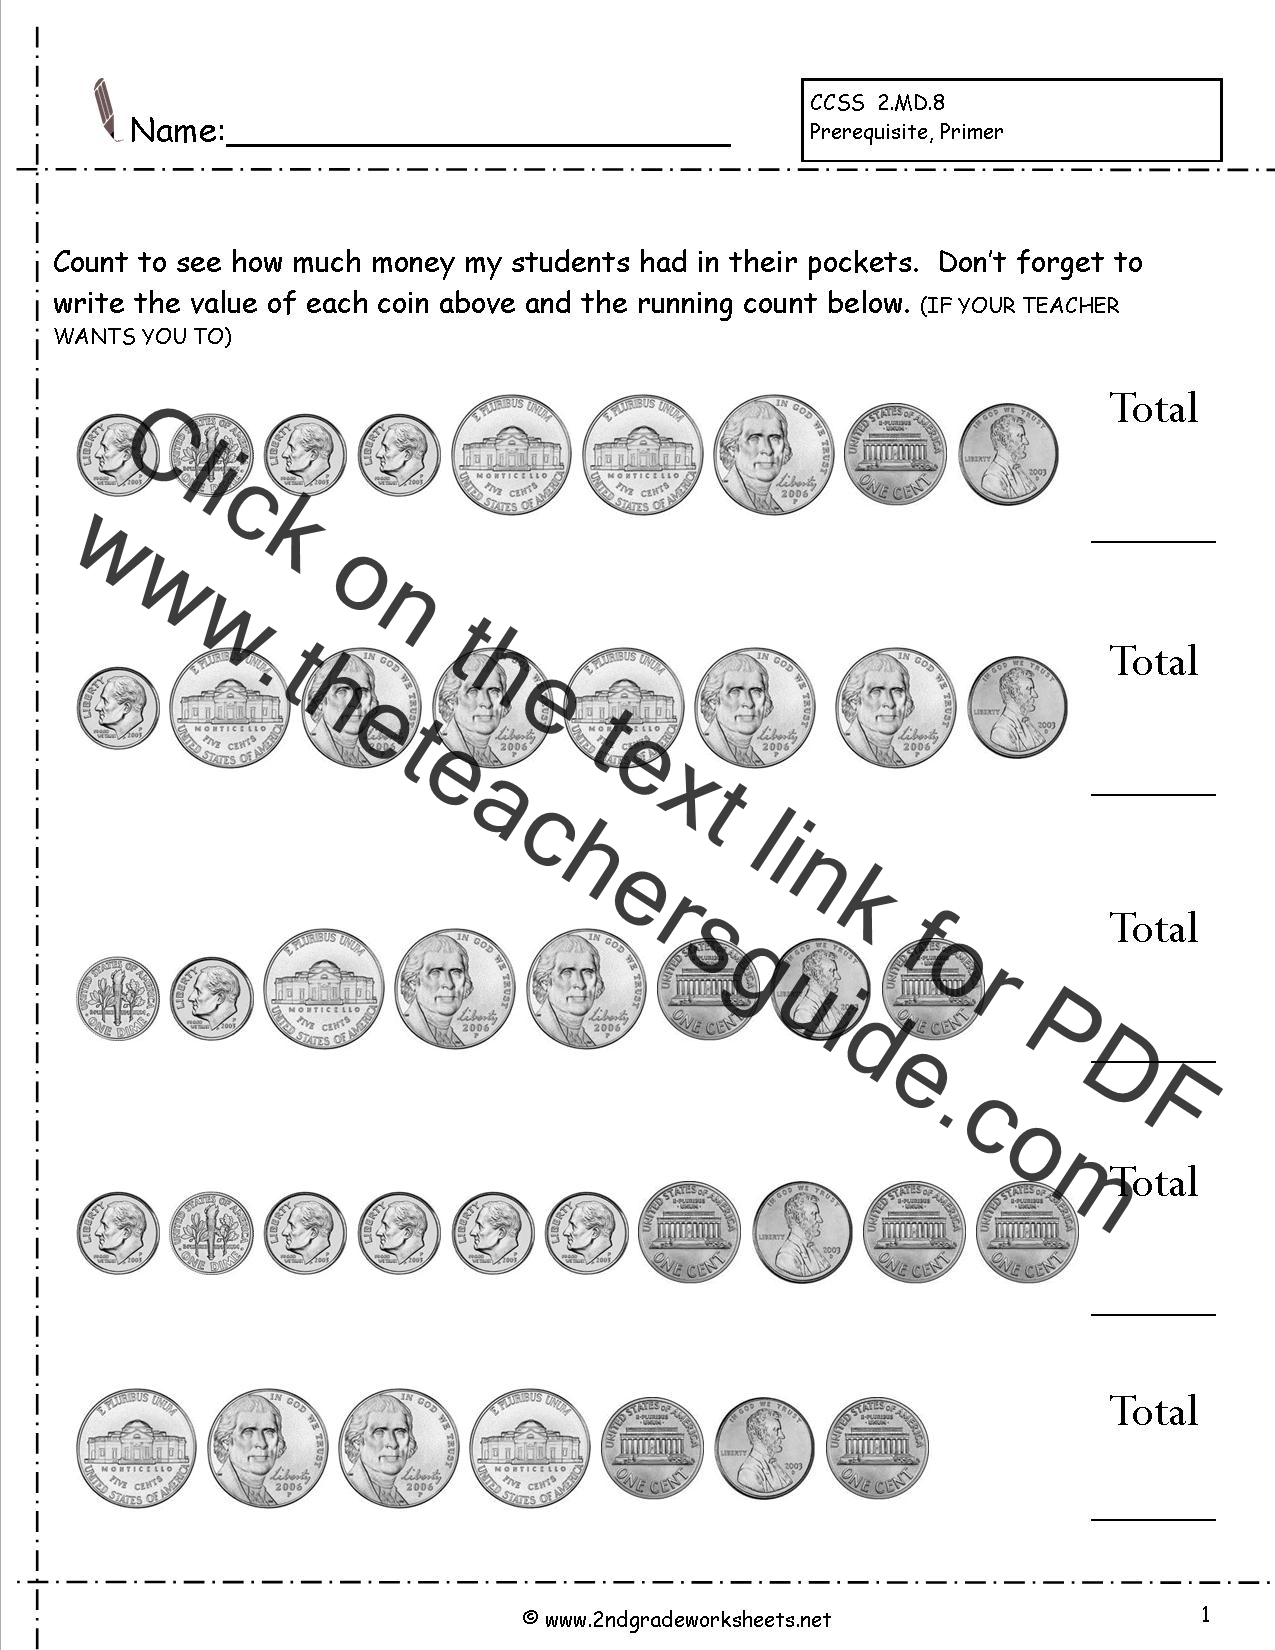 Worksheets Free Printable Counting Money Worksheets counting coins and money worksheets printouts without quarters